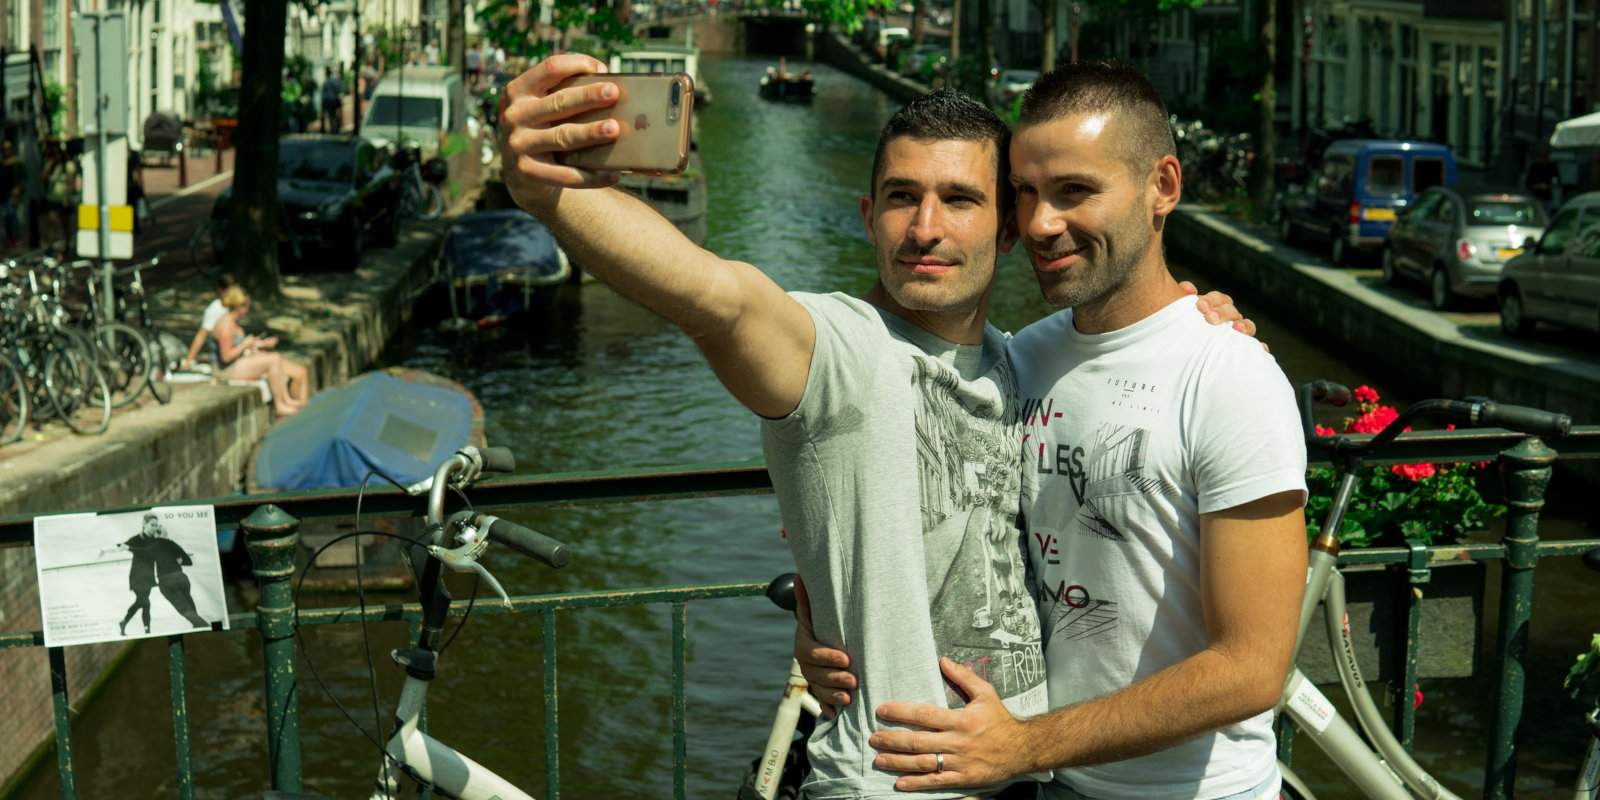 Staying in a gay hostel is a great way to save money and make new gay friends when travelling through Europe.